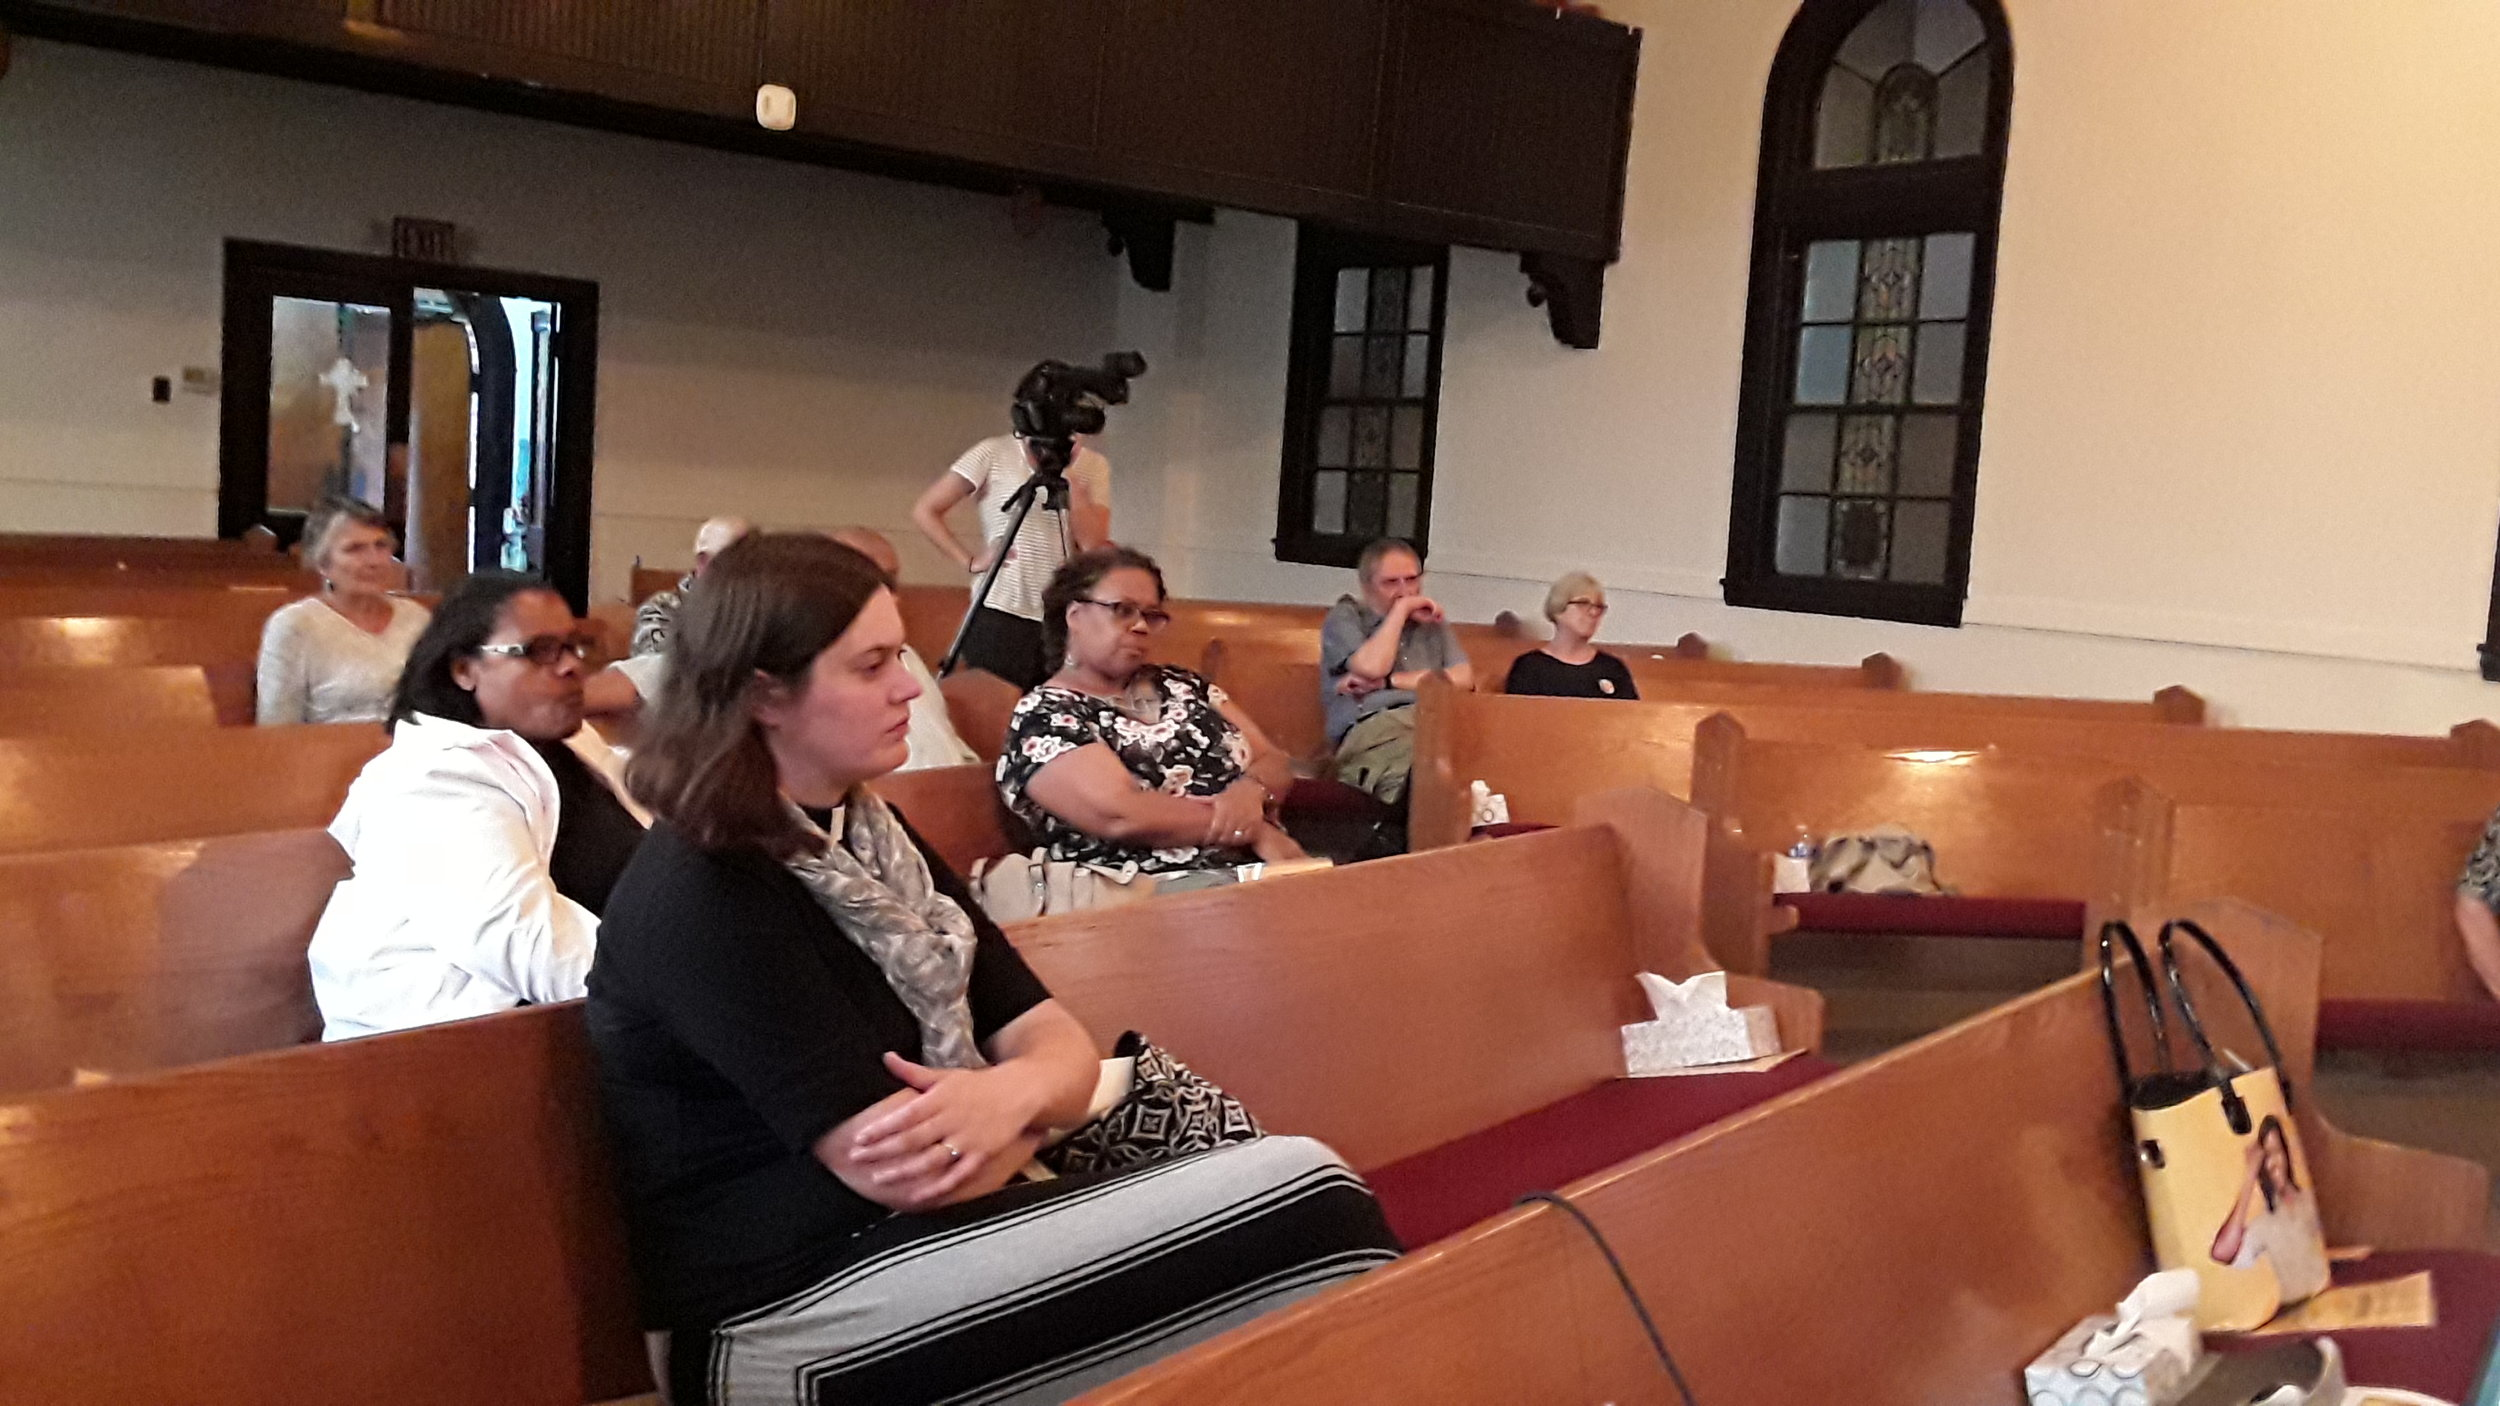 Attendees watch in pews.